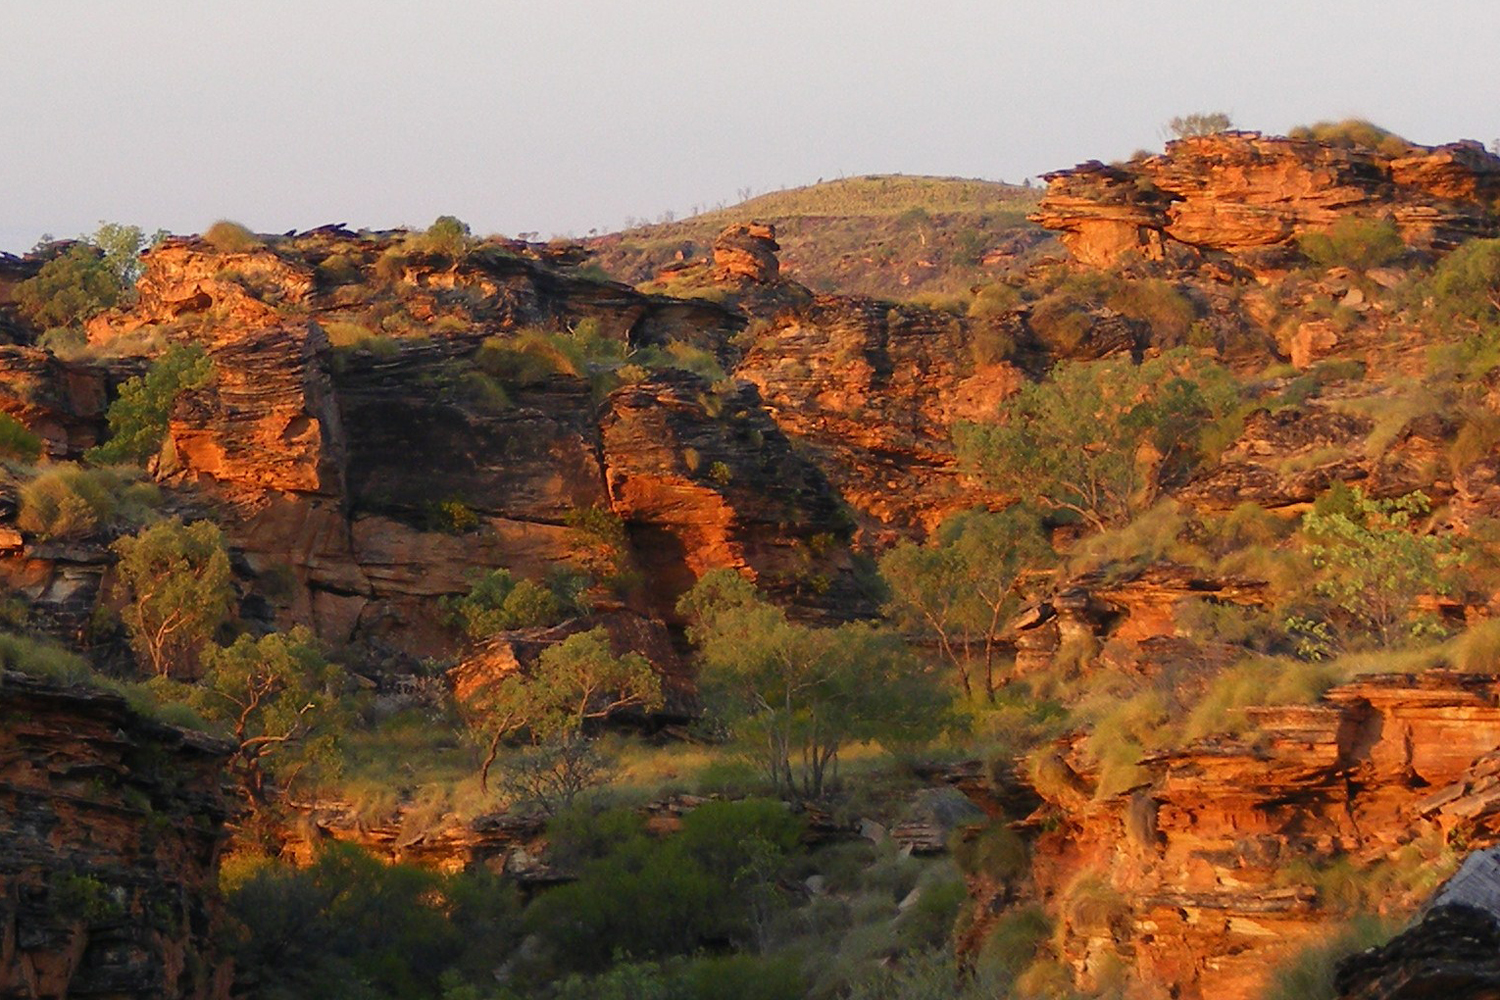 Mirima National Park, near Kununurra, is a culturally significant place for the local Miriwoong people